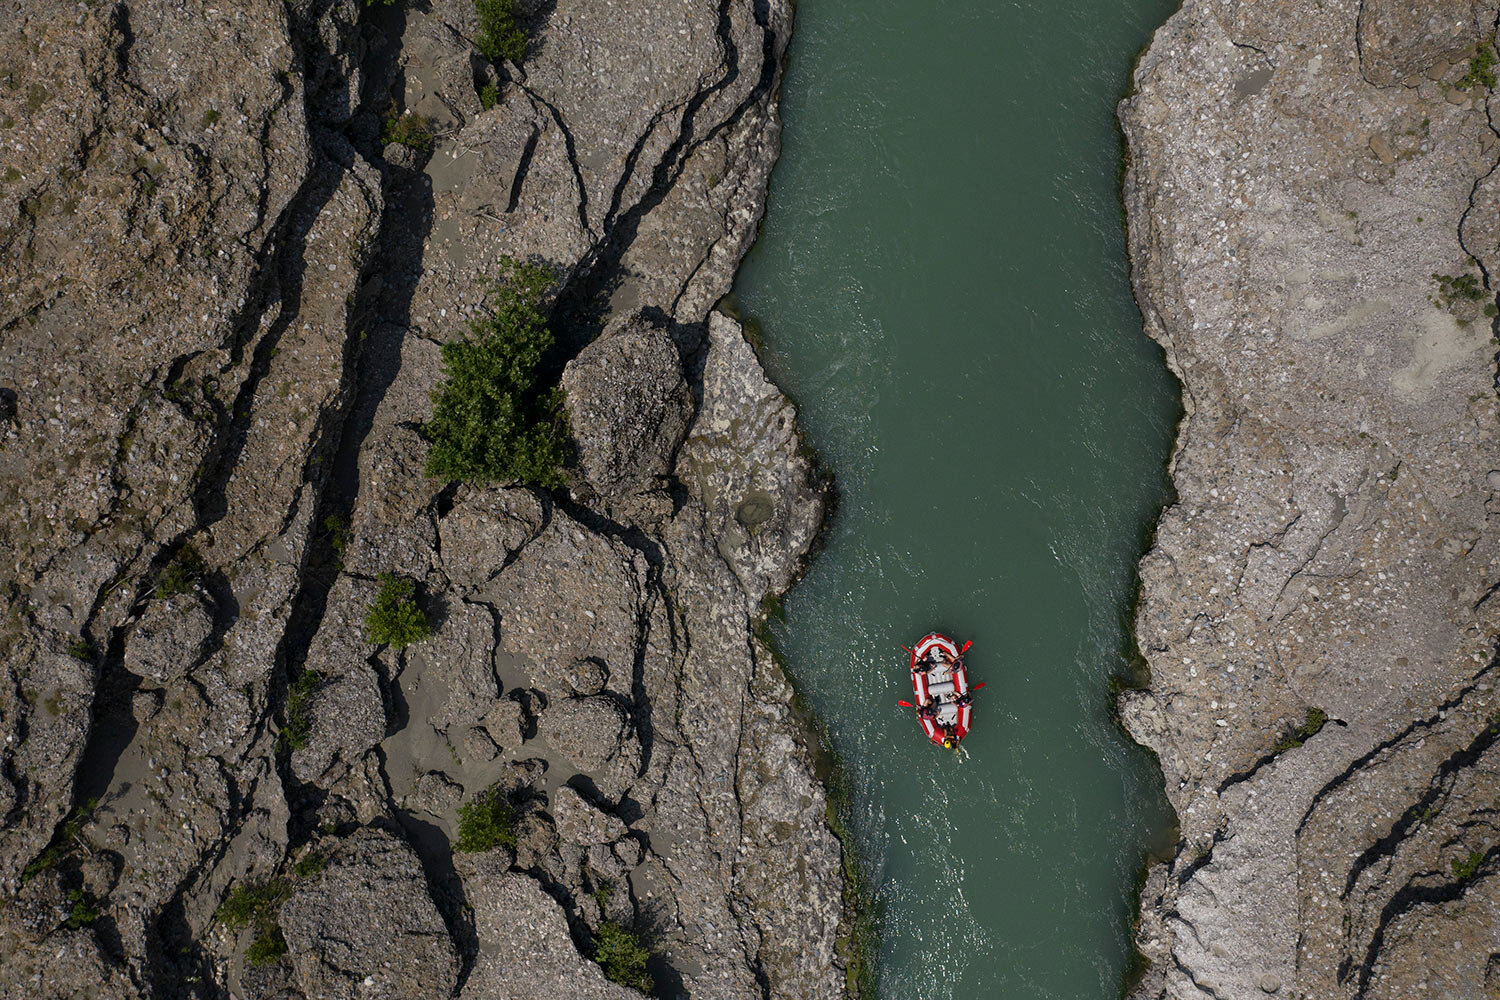 People raft on the Vjosa River near Permet, Albania. (AP Photo/Felipe Dana)